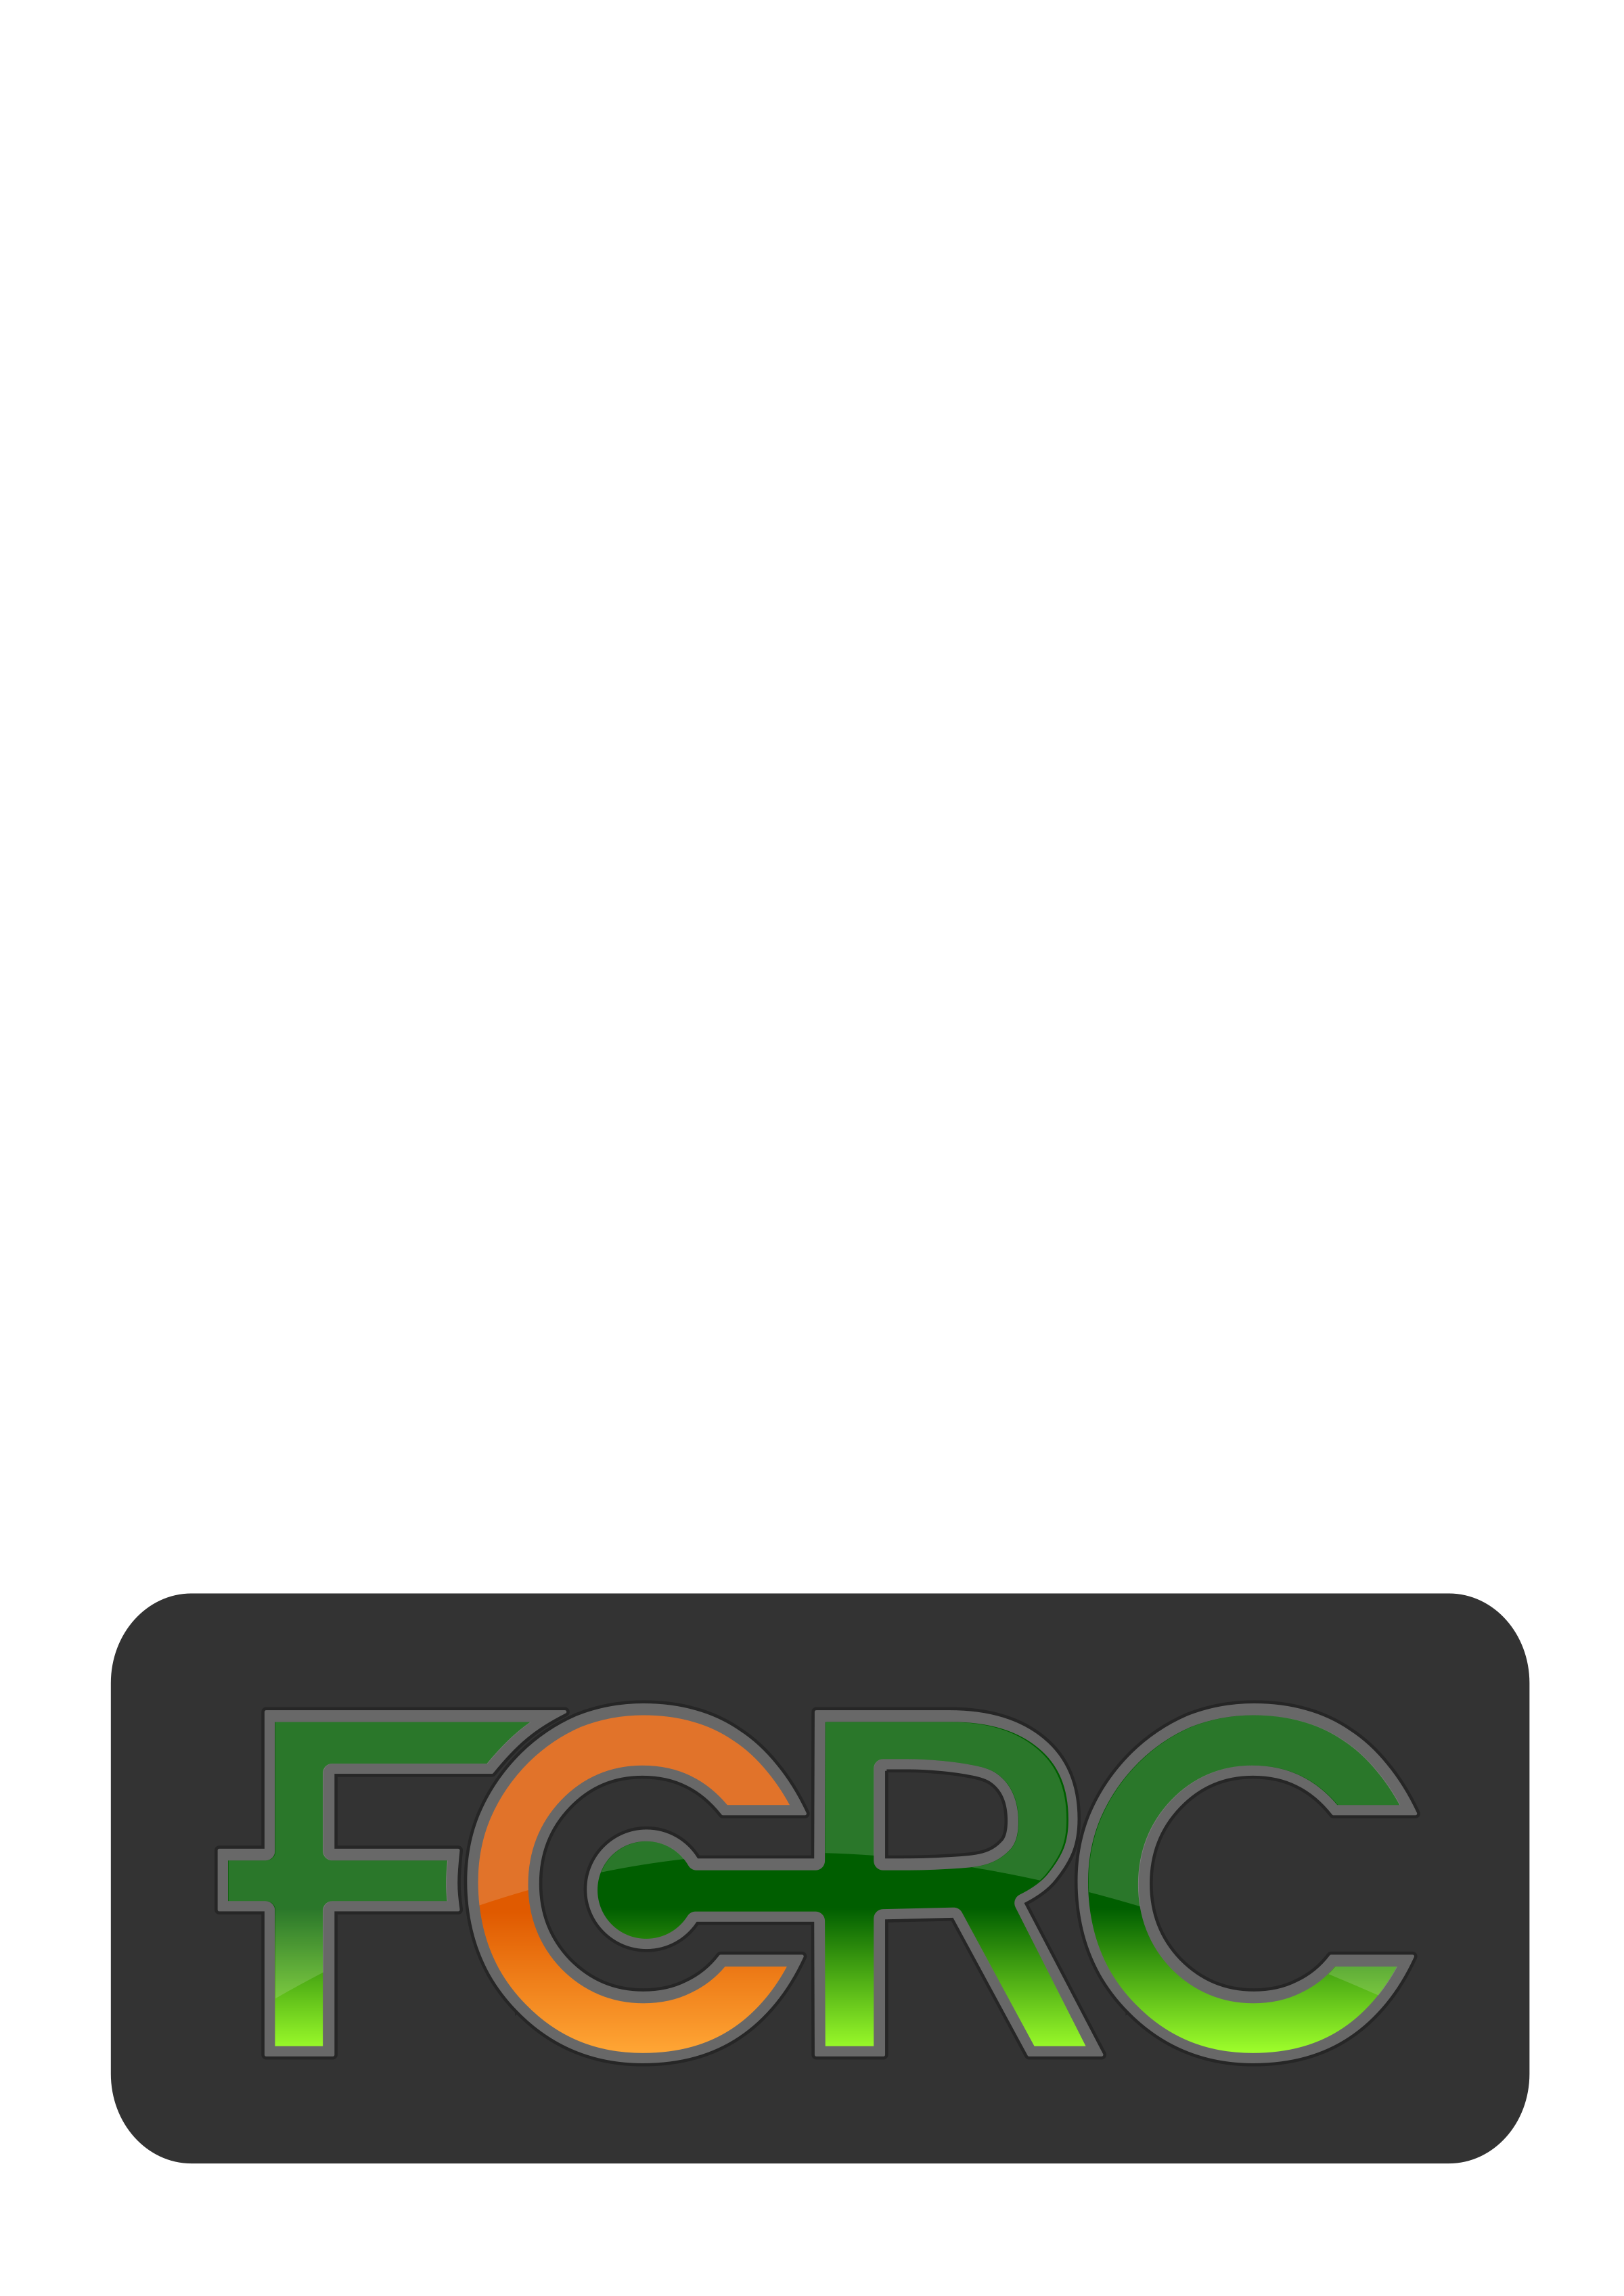 FCRC logo text 5 by timeth